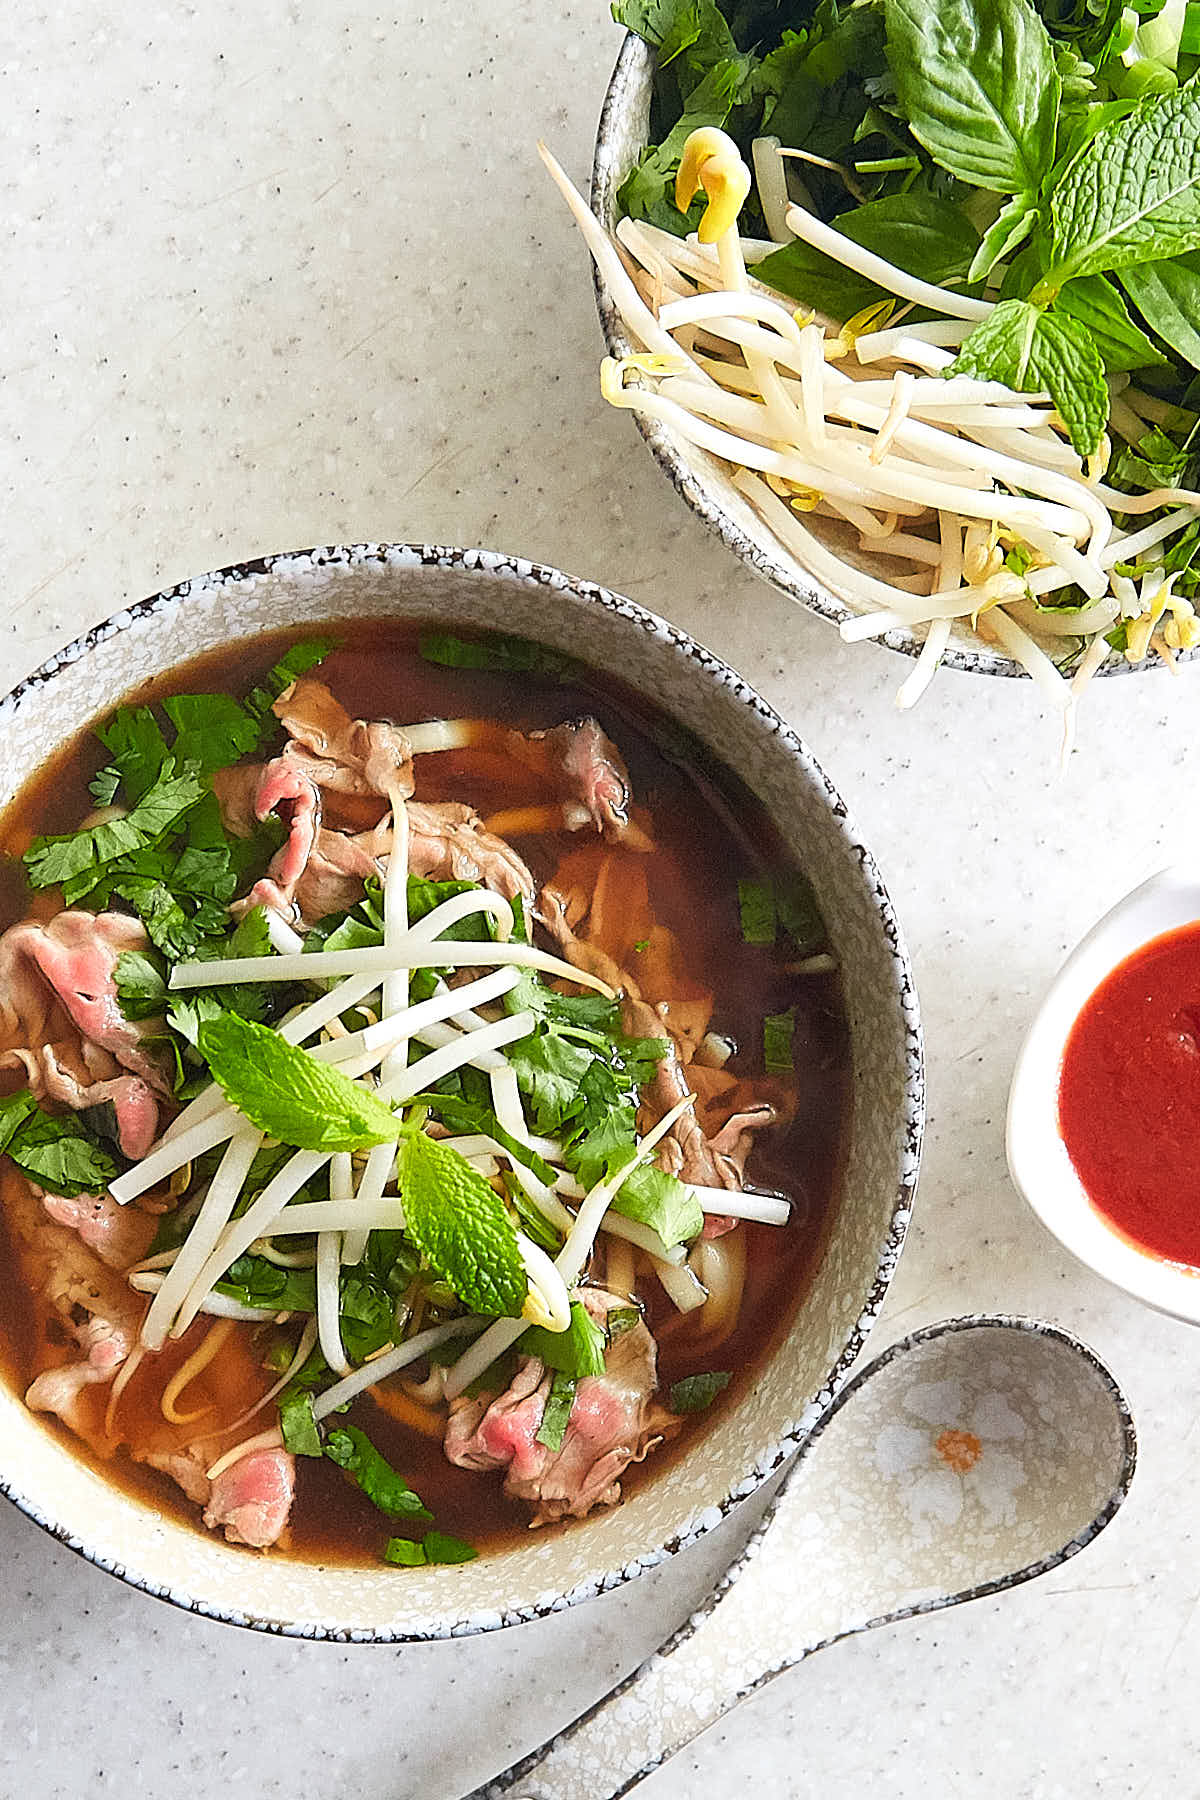 Authentic beef pho (pho bo) that will captivate you with its aroma and the taste that seamlessly combines salty, sweet, and umami all in one. The beef pho recipe comes from a restaurant that is famous for its pho bo. A must try. | ifoodblogger.com